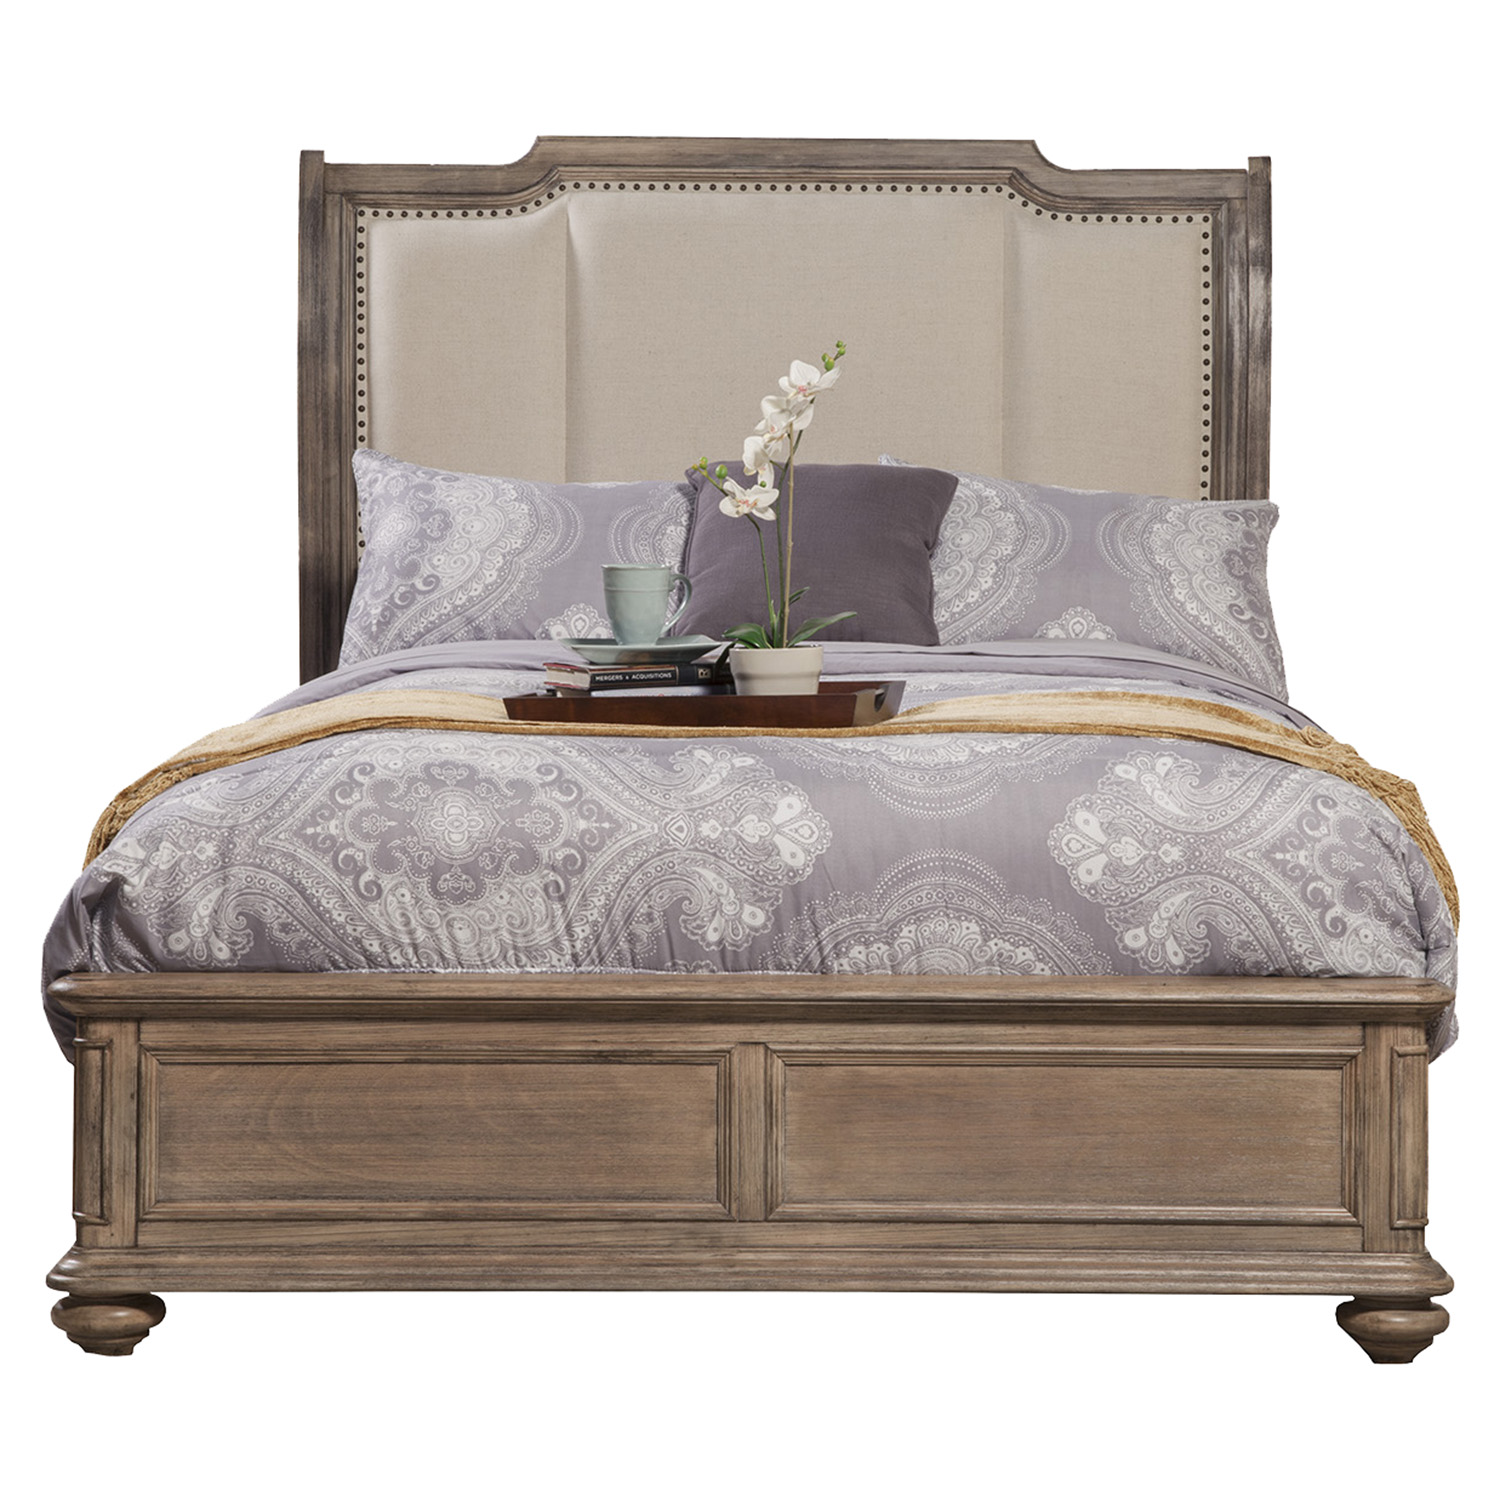 Melbourne French Truffle Bed - Nailheads, Upholstered Headboard